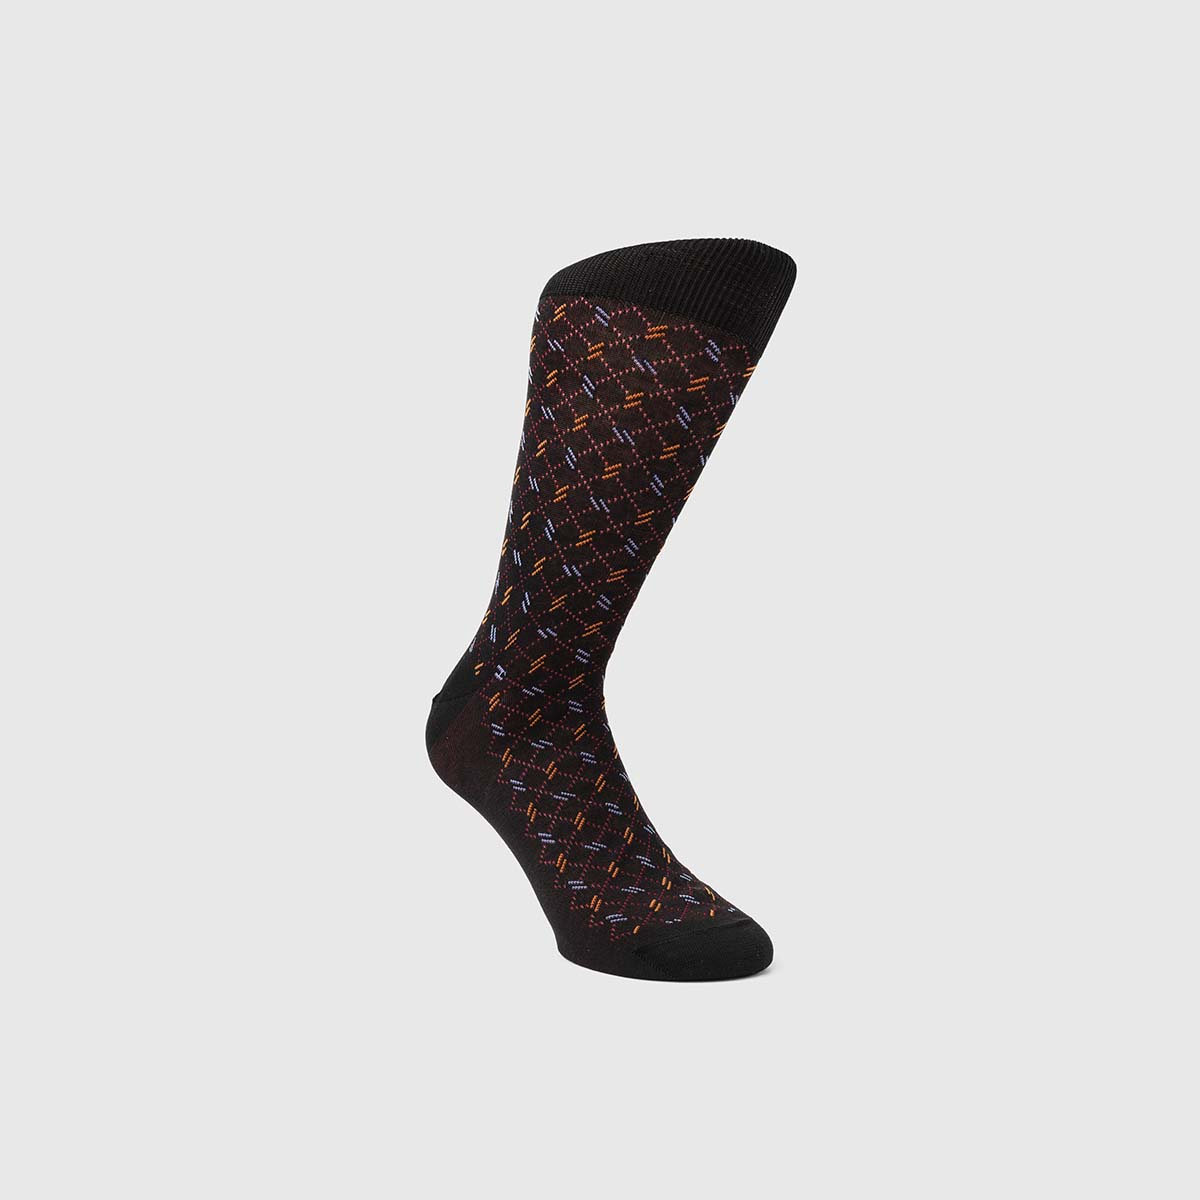 Bresciani 1970 Cotton Socks in Sienna